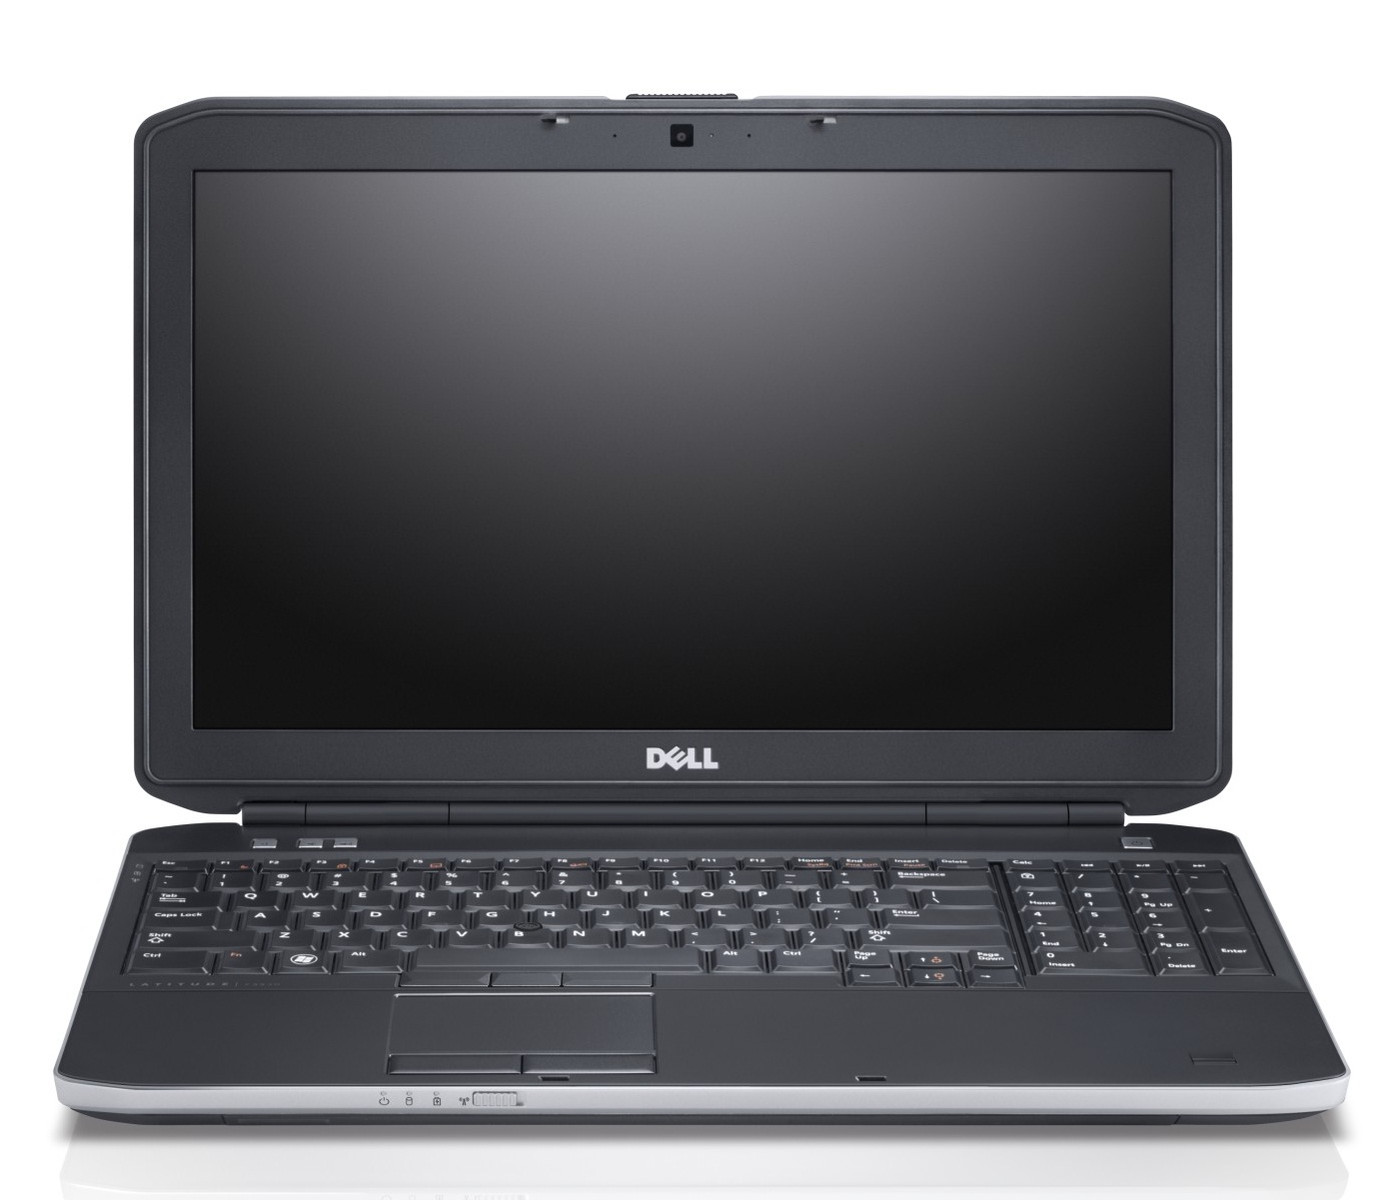 free download drivers for dell inspiron n5010 for windows 7 64 bit